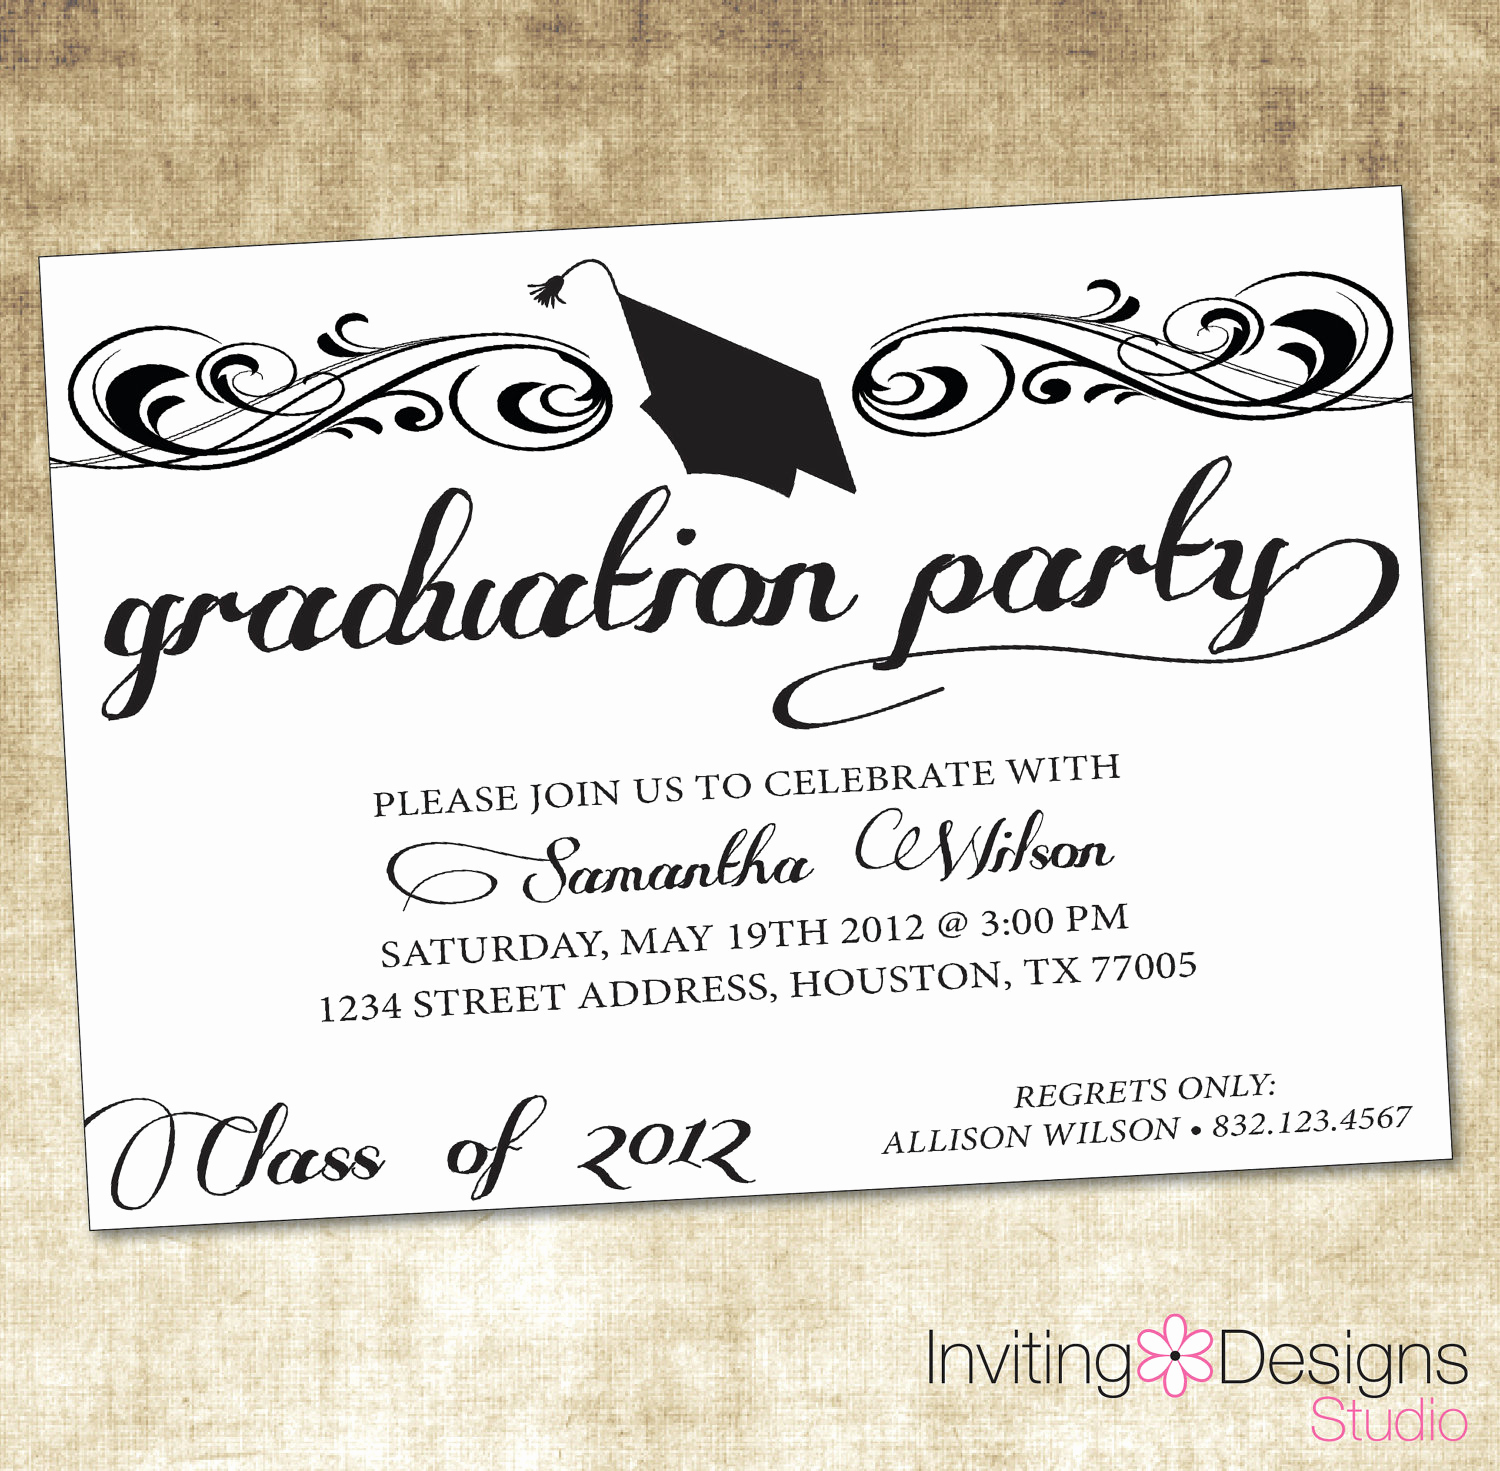 Invitation Quotes for Party Inspirational Quotes for Graduation Party Invitations Quotesgram